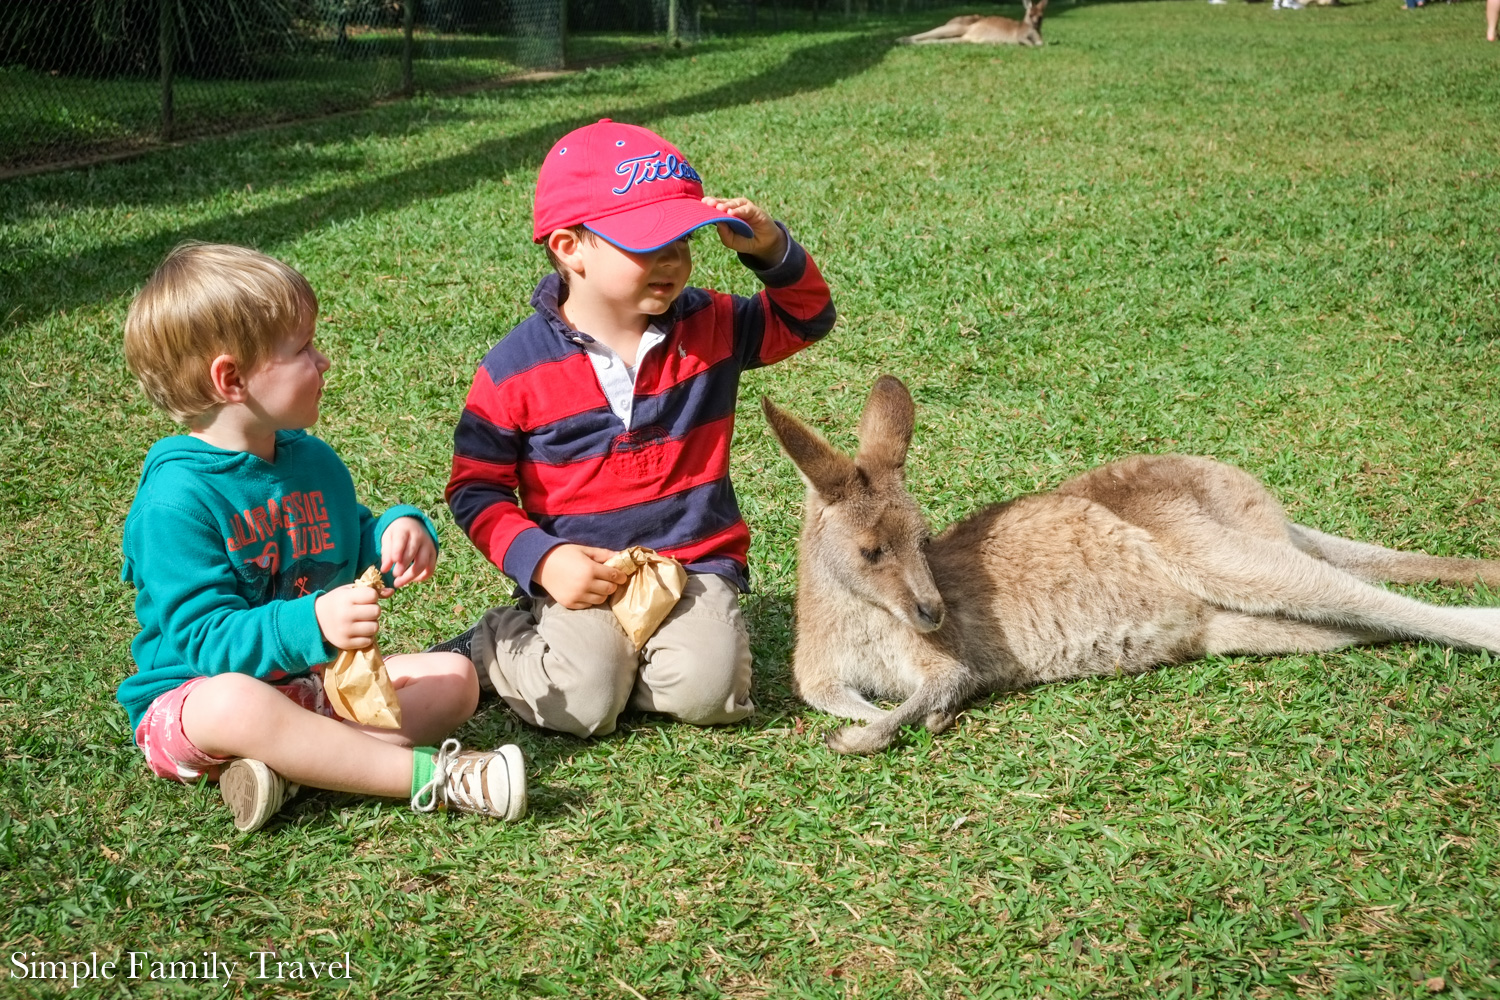 Throw back to the Boy and his friend were much tinier hanging with the Kangaroos at Australia Zoo.